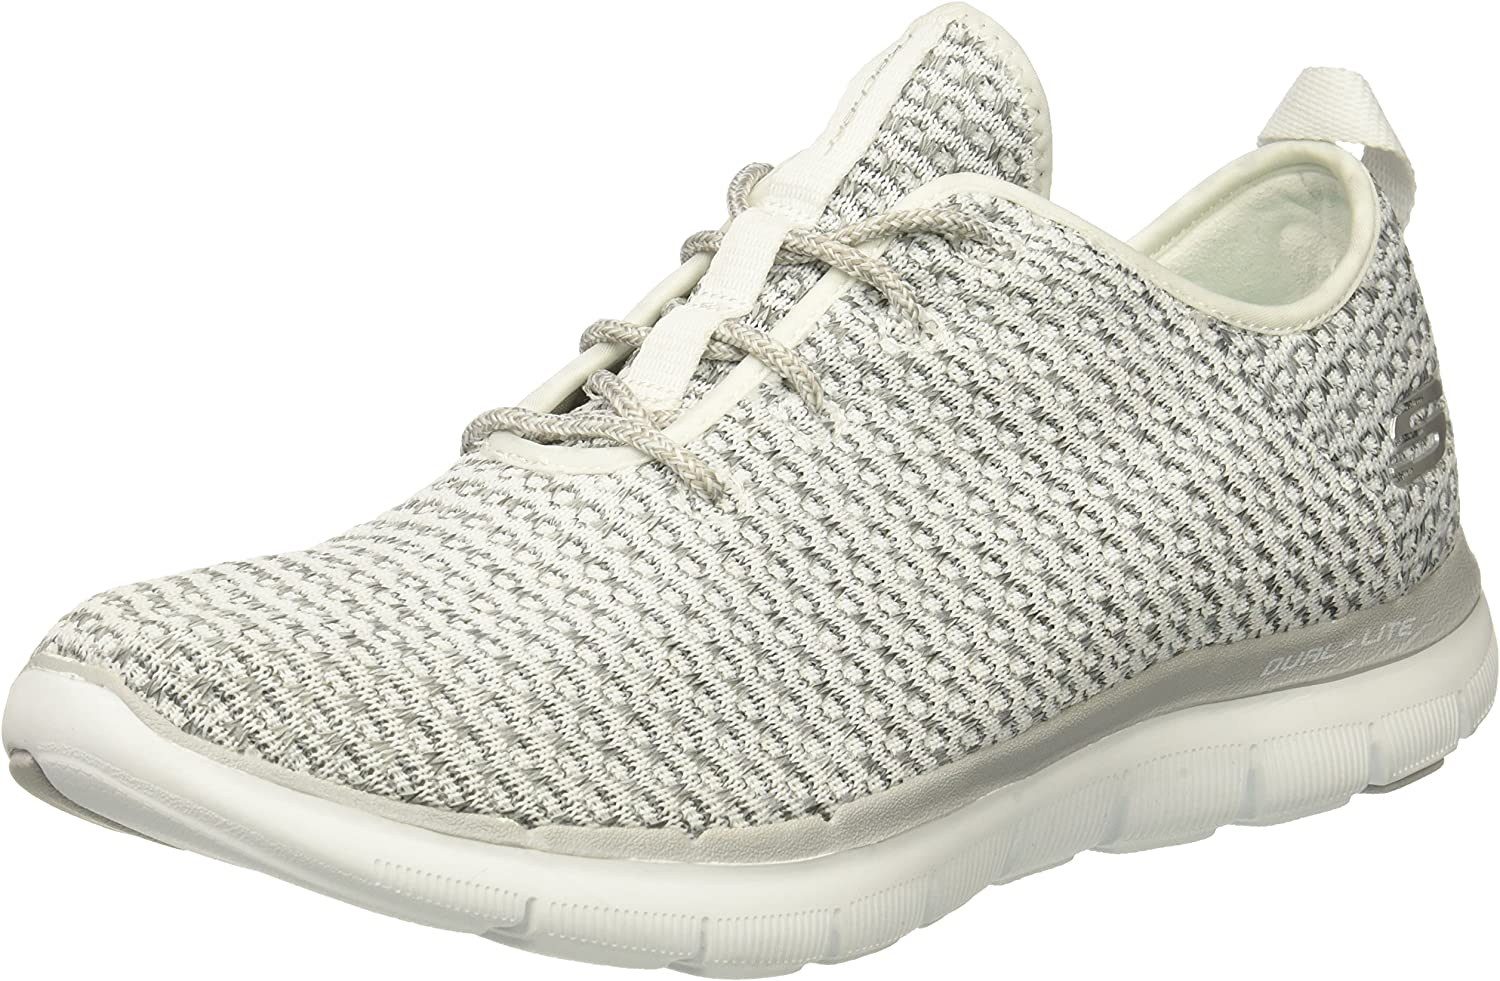 Skechers Women's Flex Max 40% OFF Factory outlet Appeal 2.0 Bold Fashion Move Sneaker